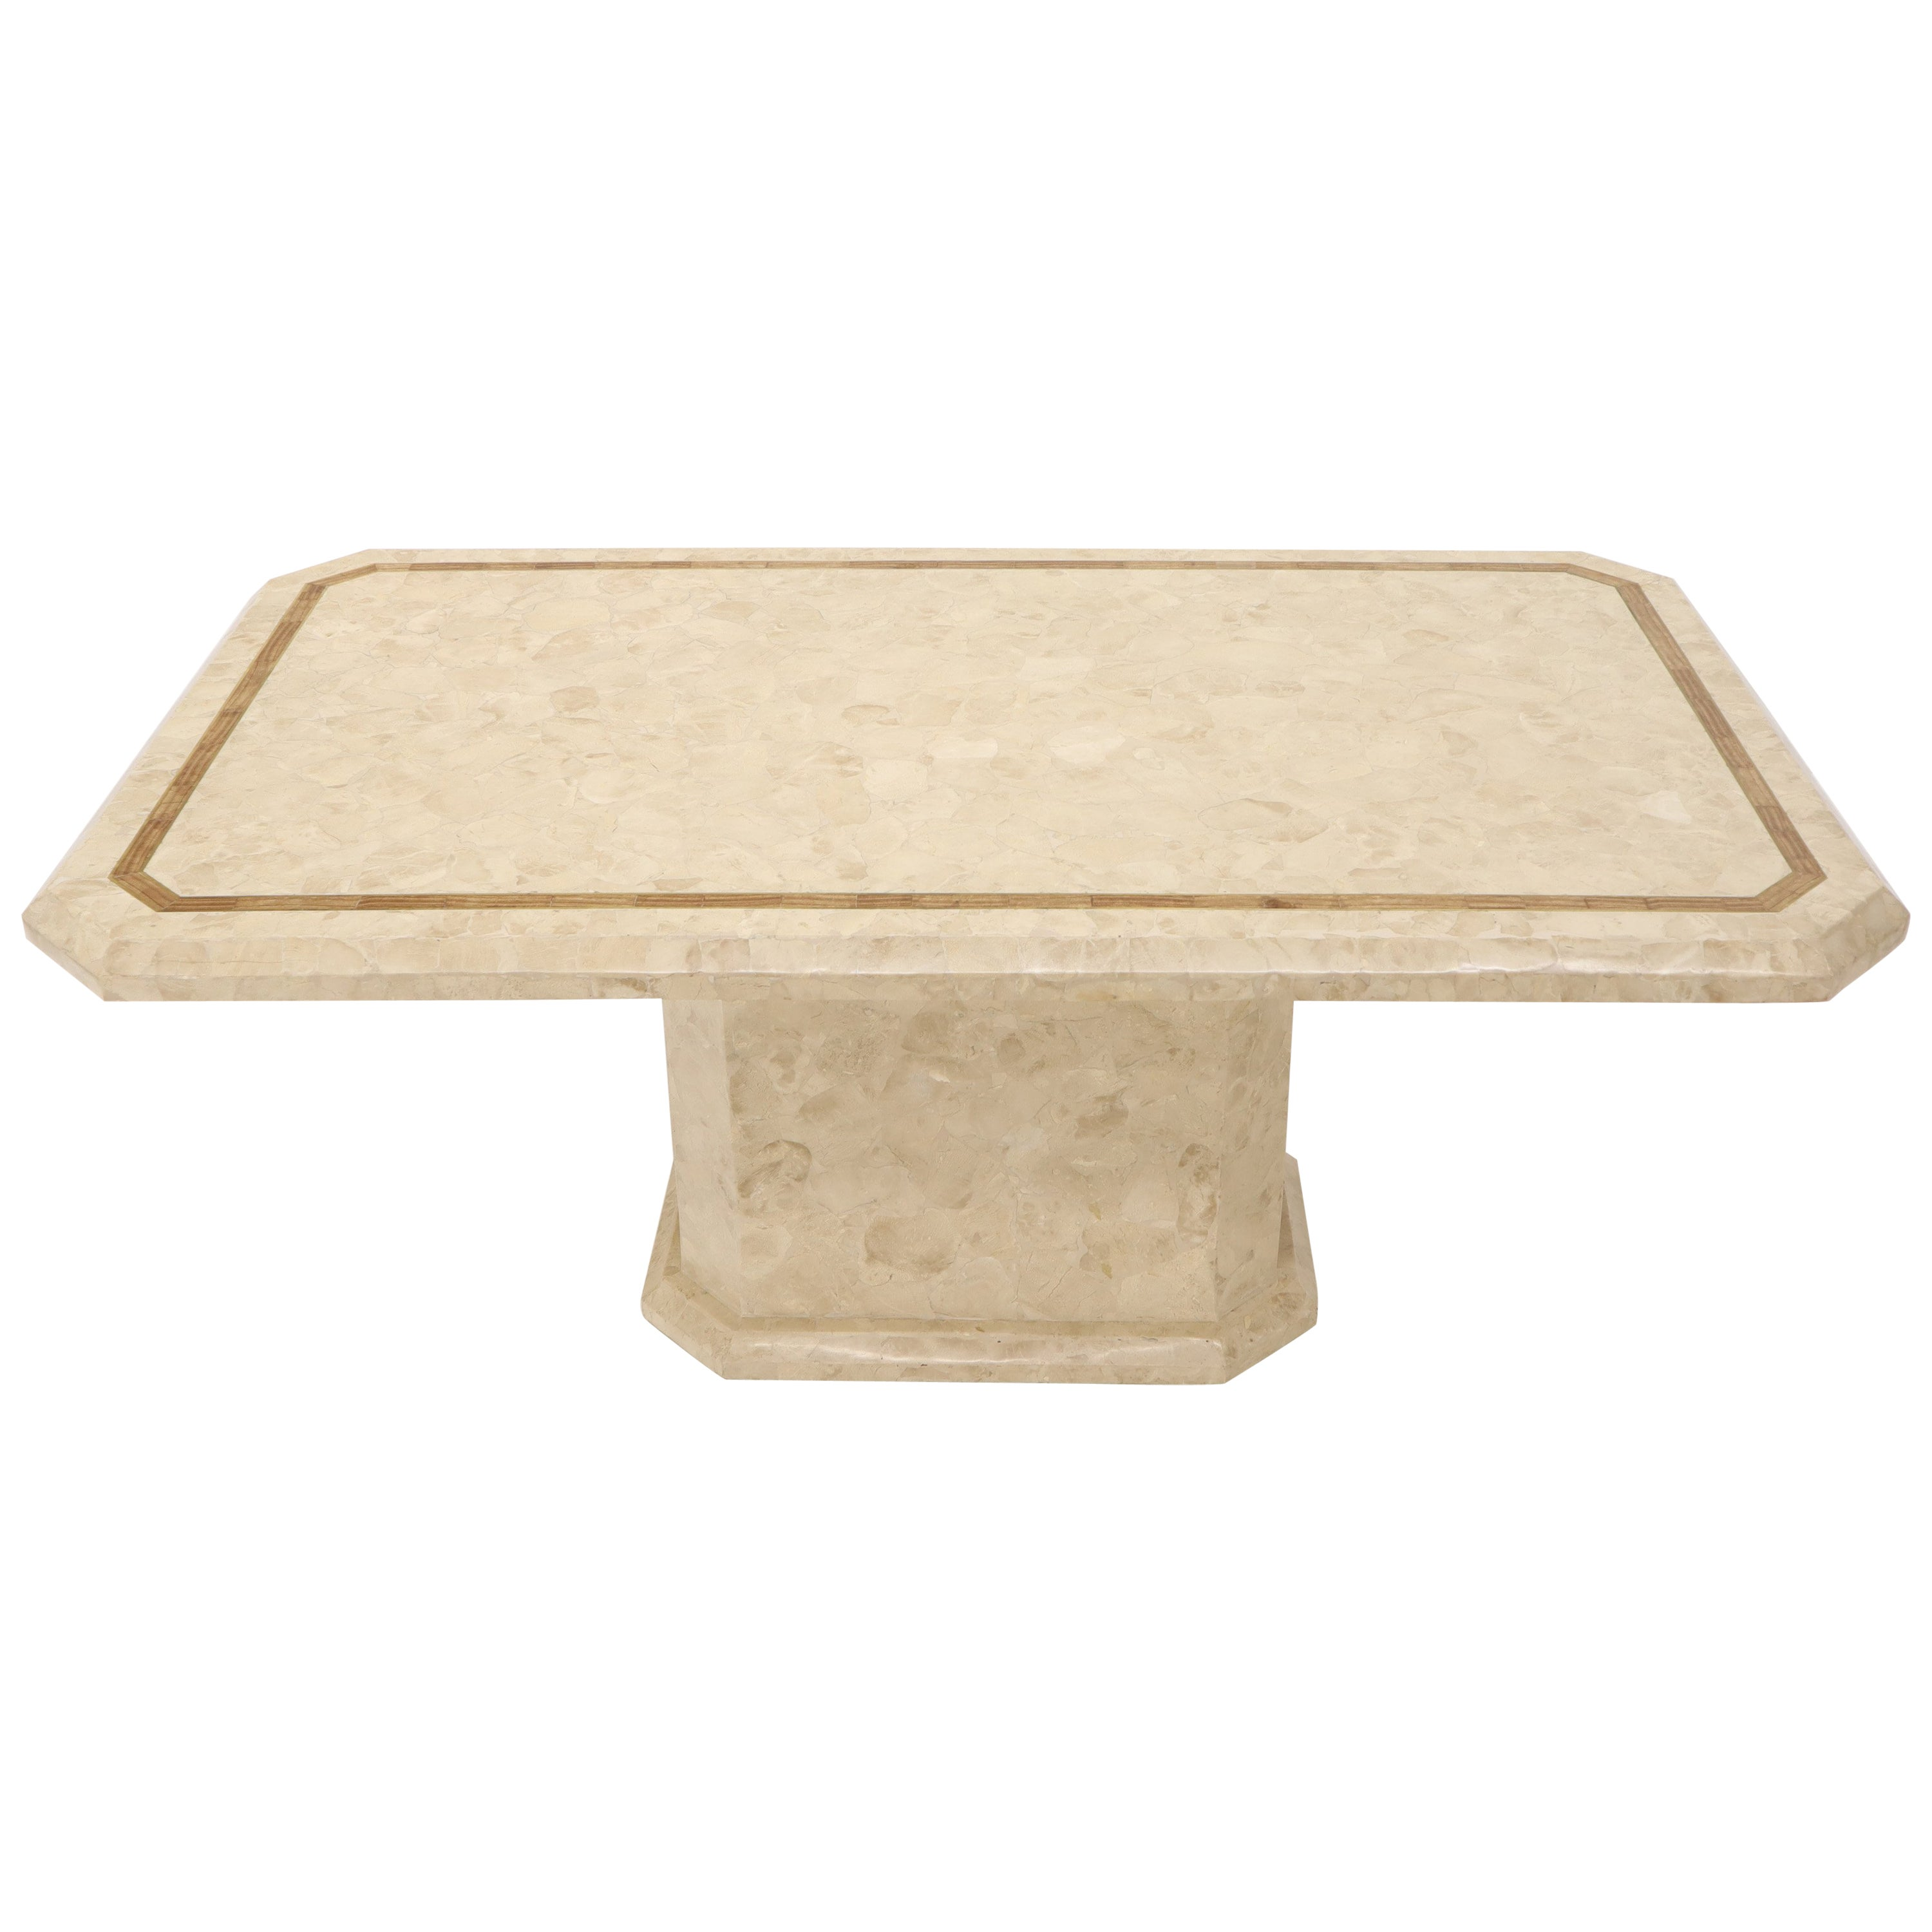 Stone Veneer Tessellated Inlayed Rectangular Dining Conference Table